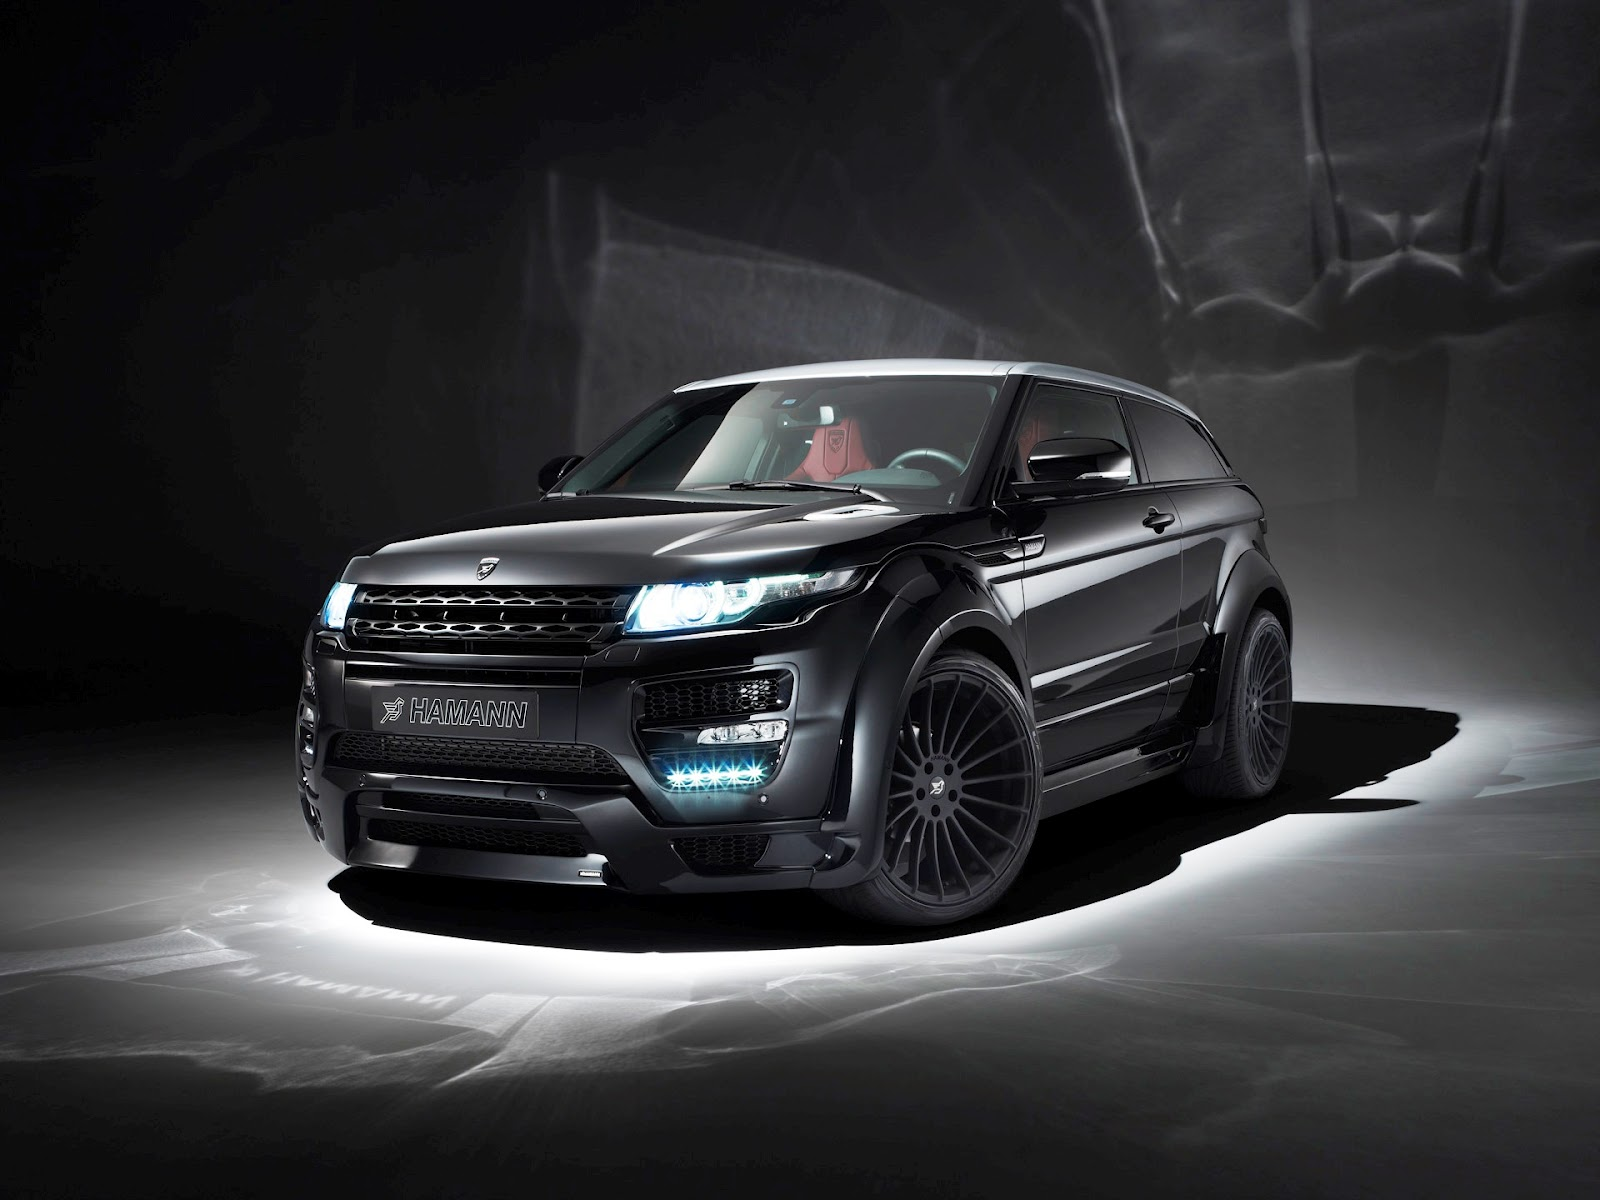 2013 german modification range rover evoque hamann news hot car. Black Bedroom Furniture Sets. Home Design Ideas